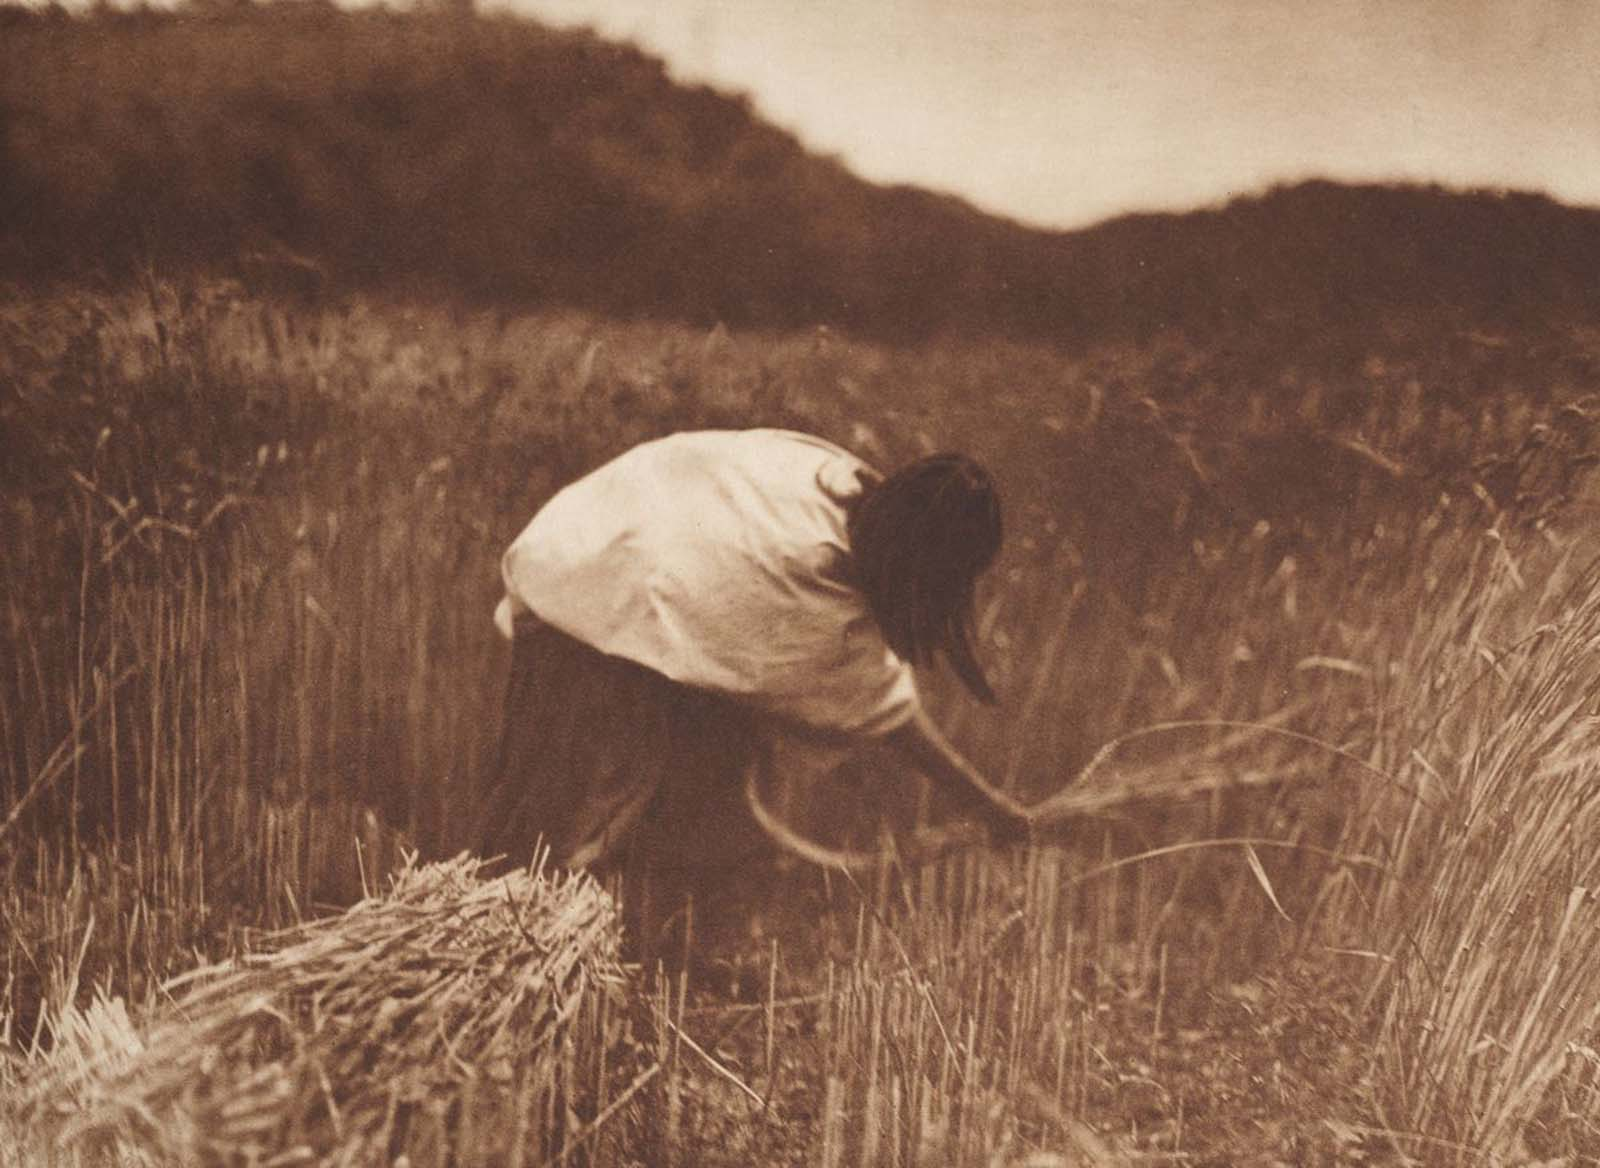 An Apache woman reaps grain. 1910.